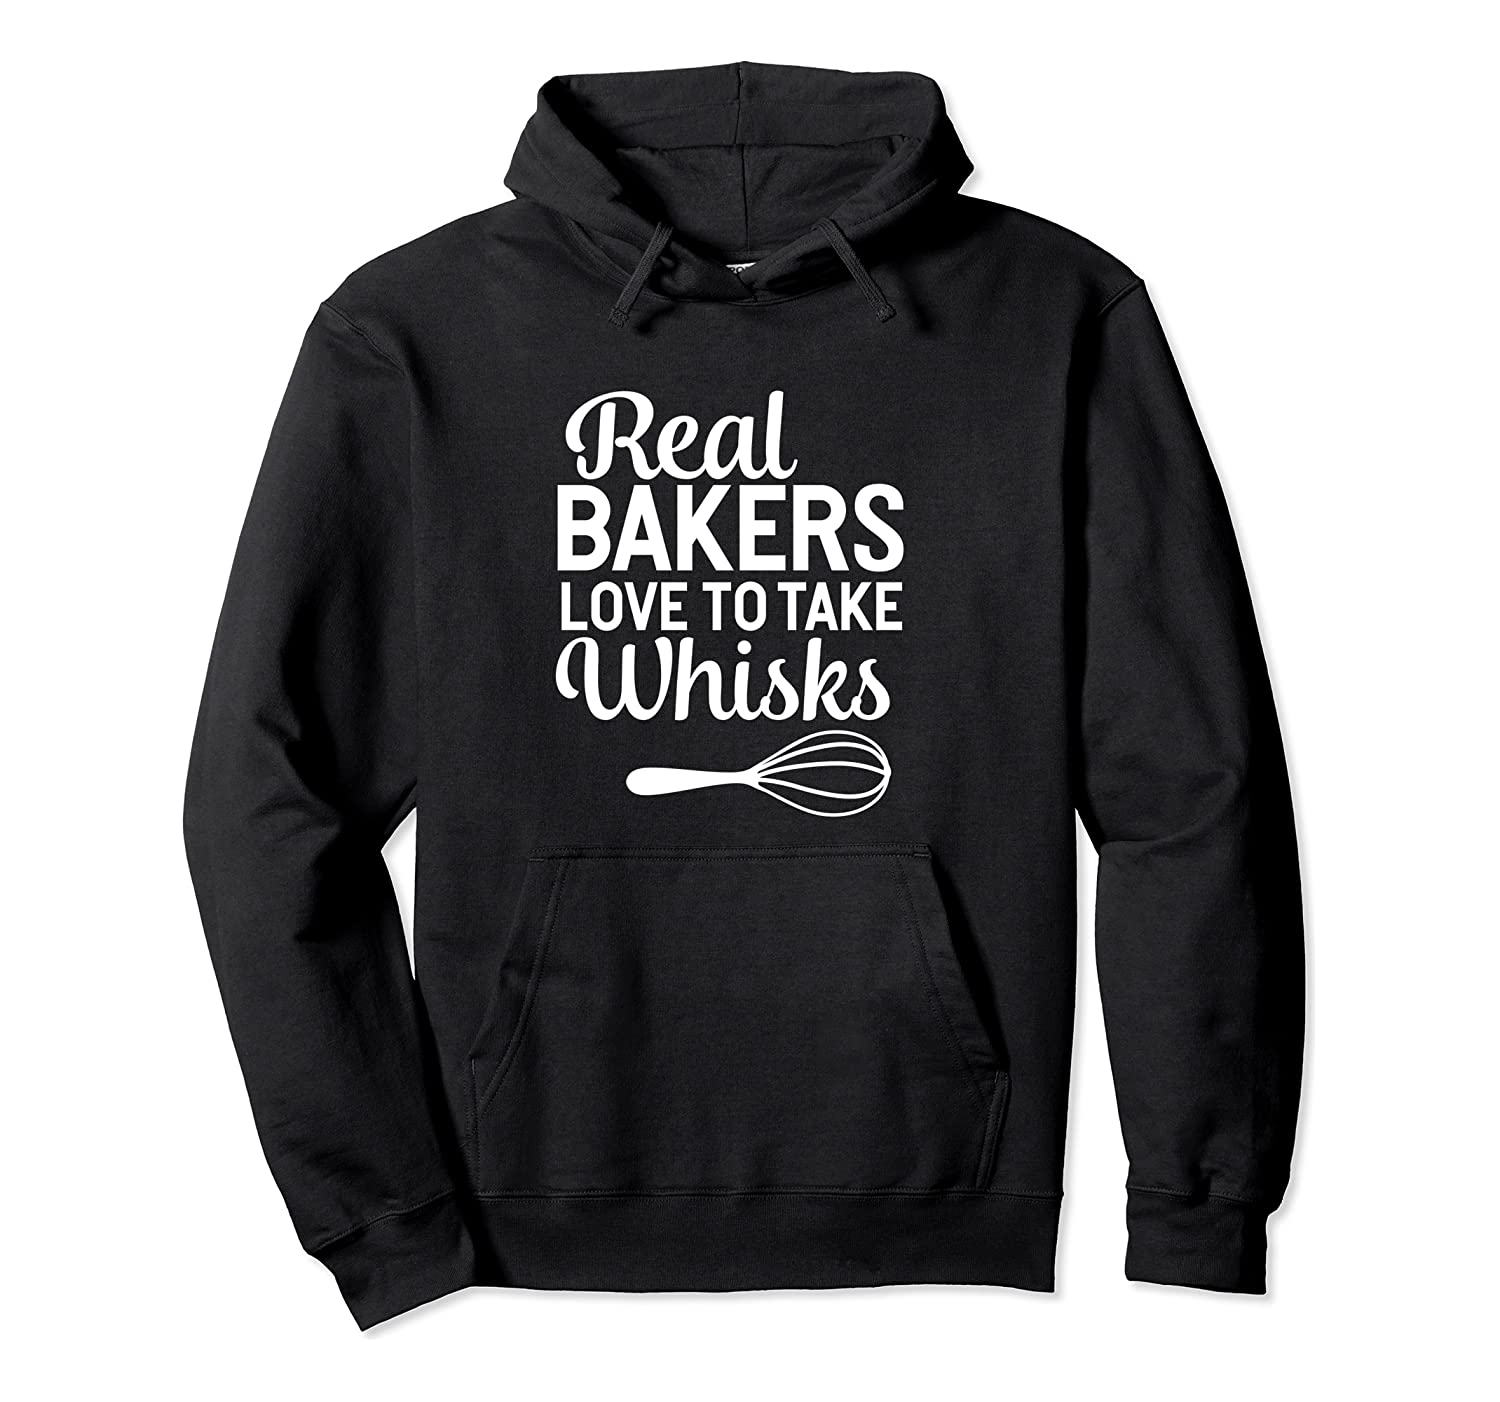 Funny Baking Saying – Real Bakers Love to Take Whisks Pullover Hoodie